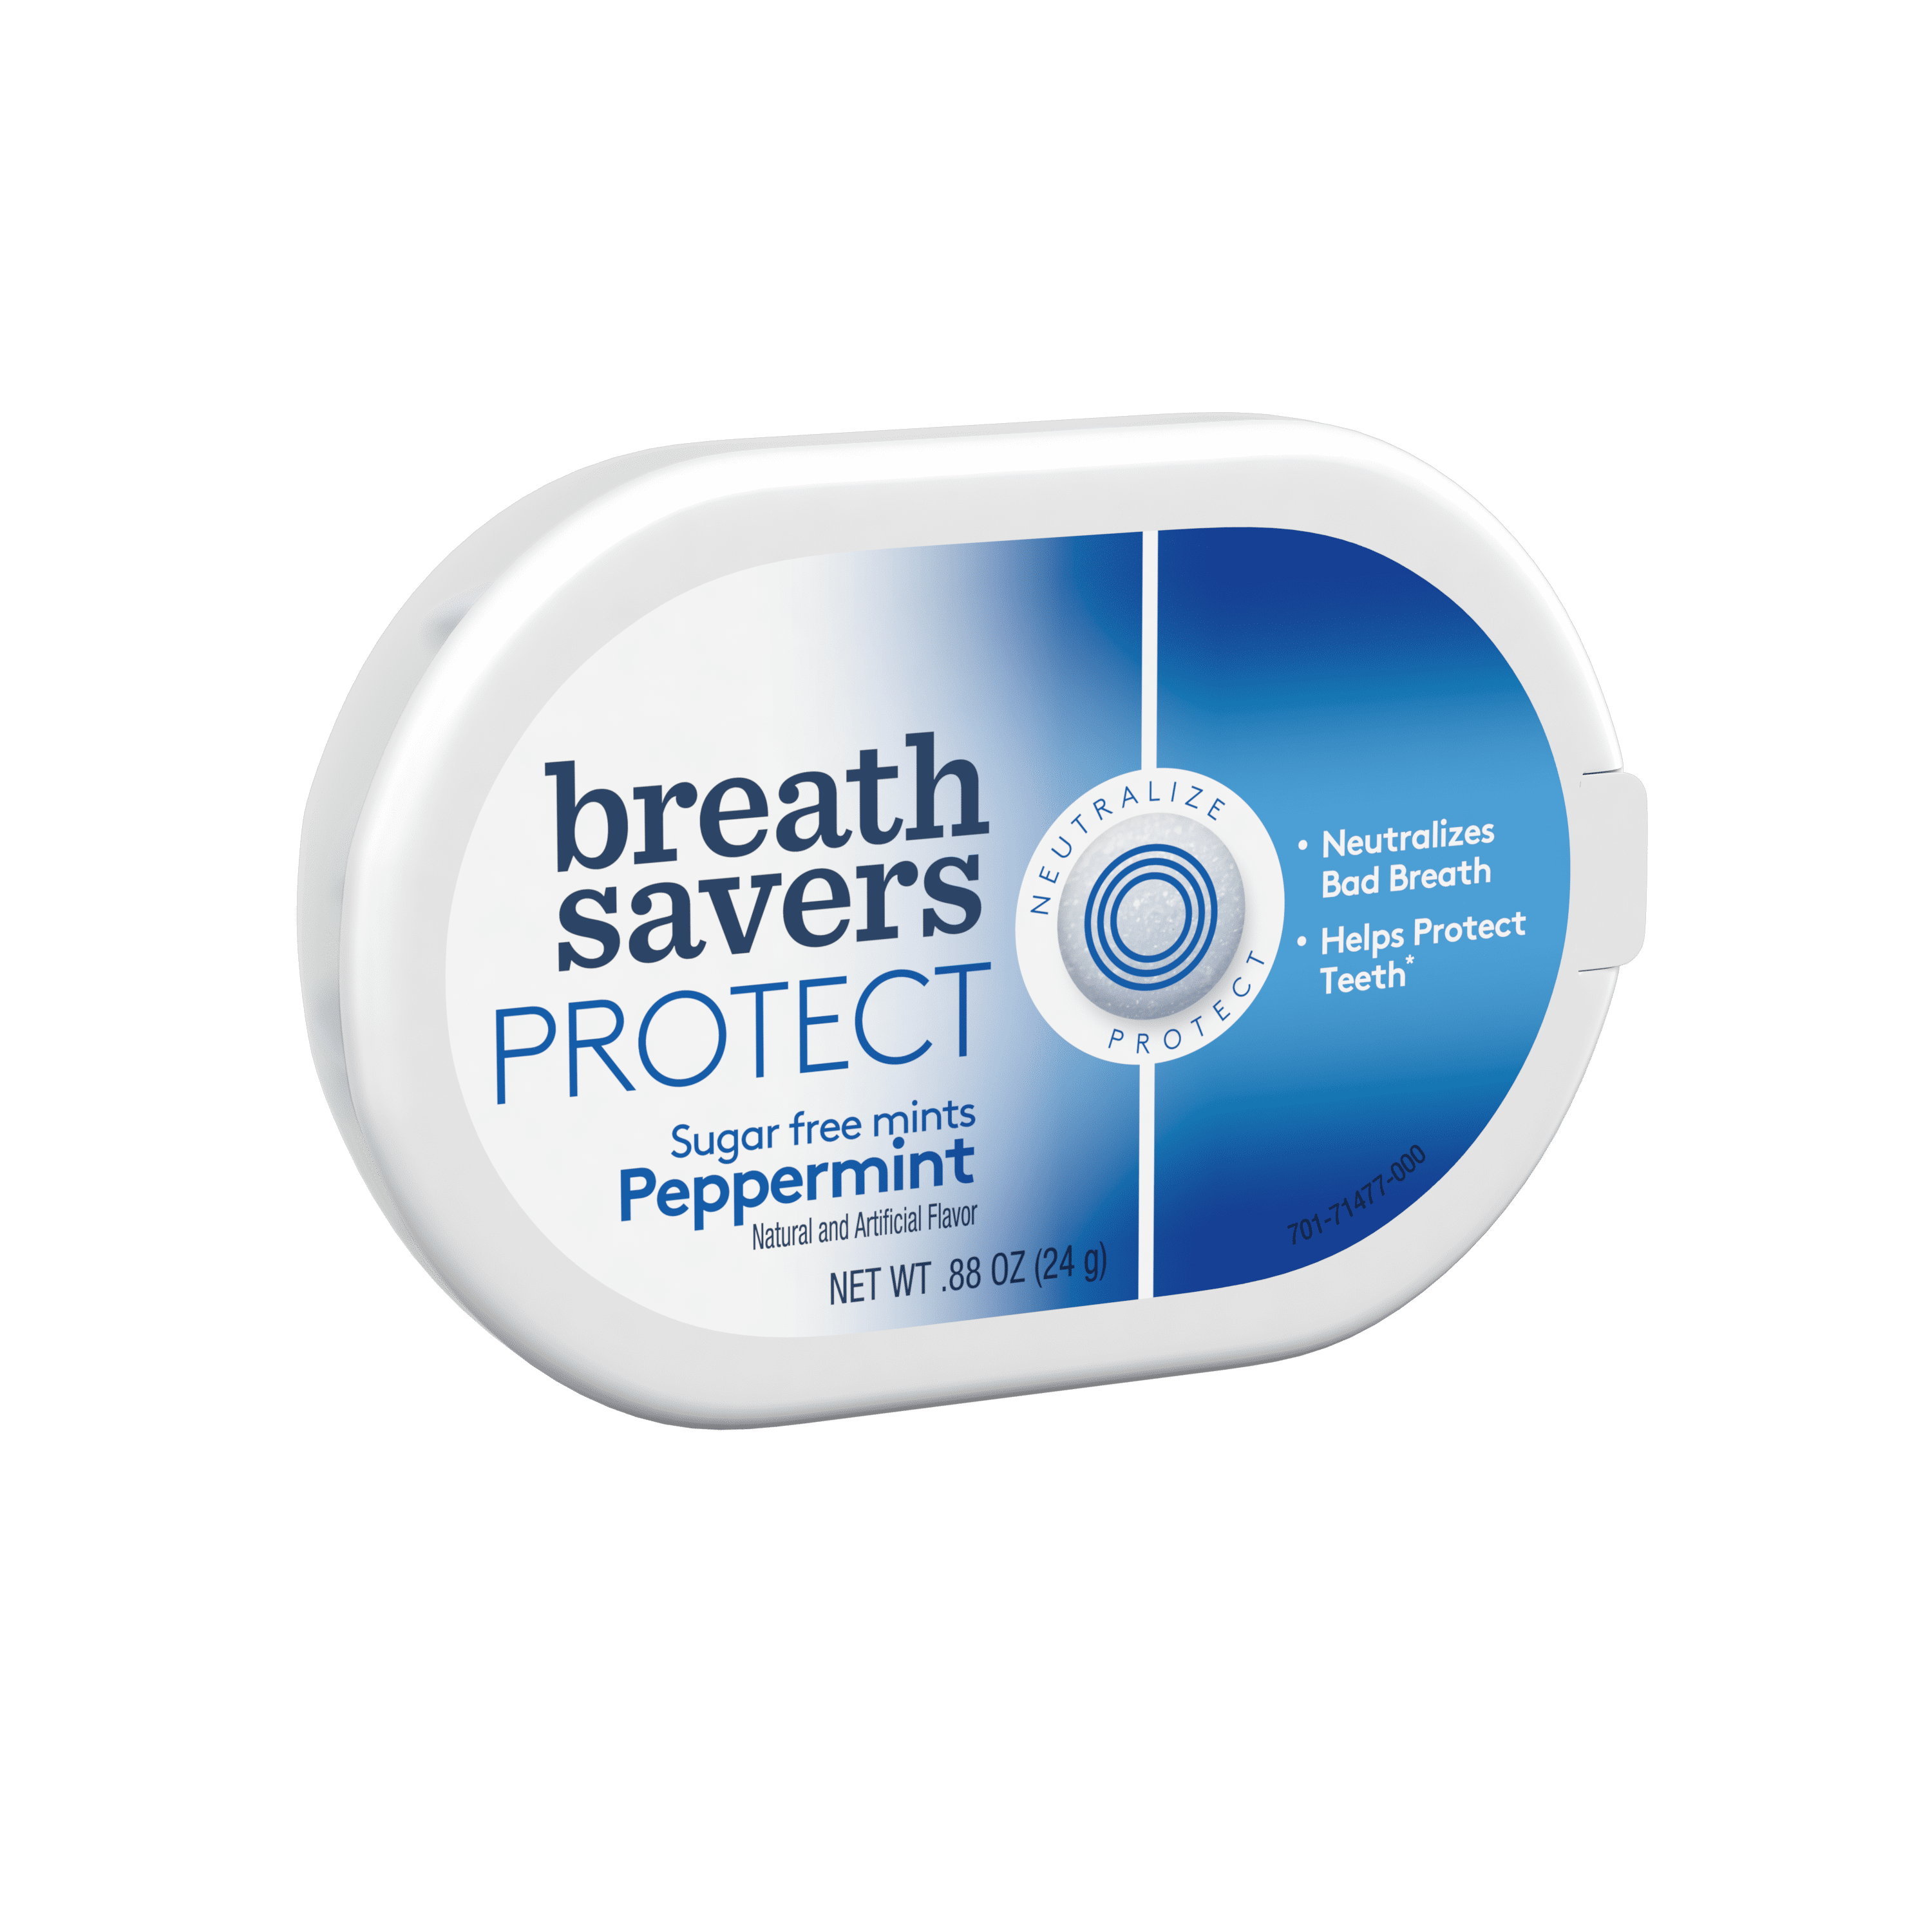 BREATH SAVERS PROTECT Mints in Peppermint Flavor, .88 oz by The Hershey Company